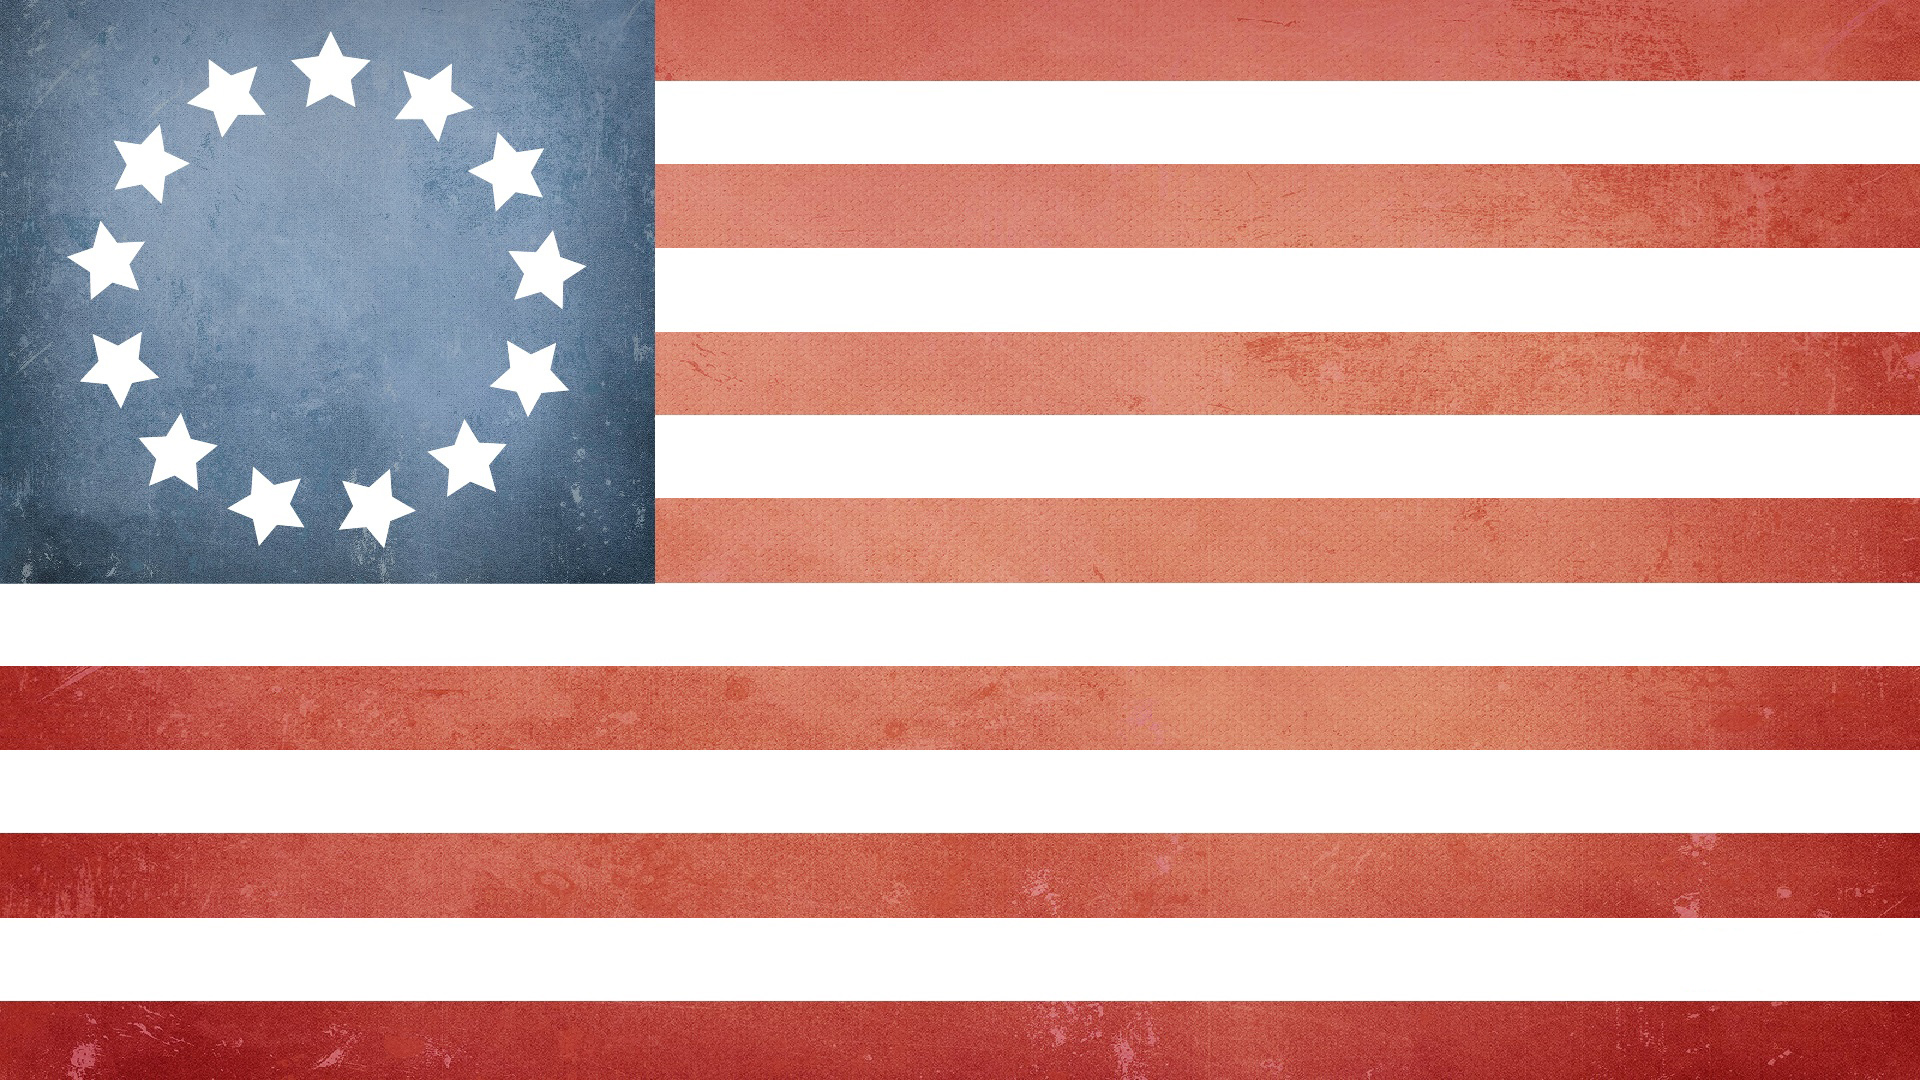 Usa Flag Art Wallpaper Images amp Pictures   Becuo 1920x1080